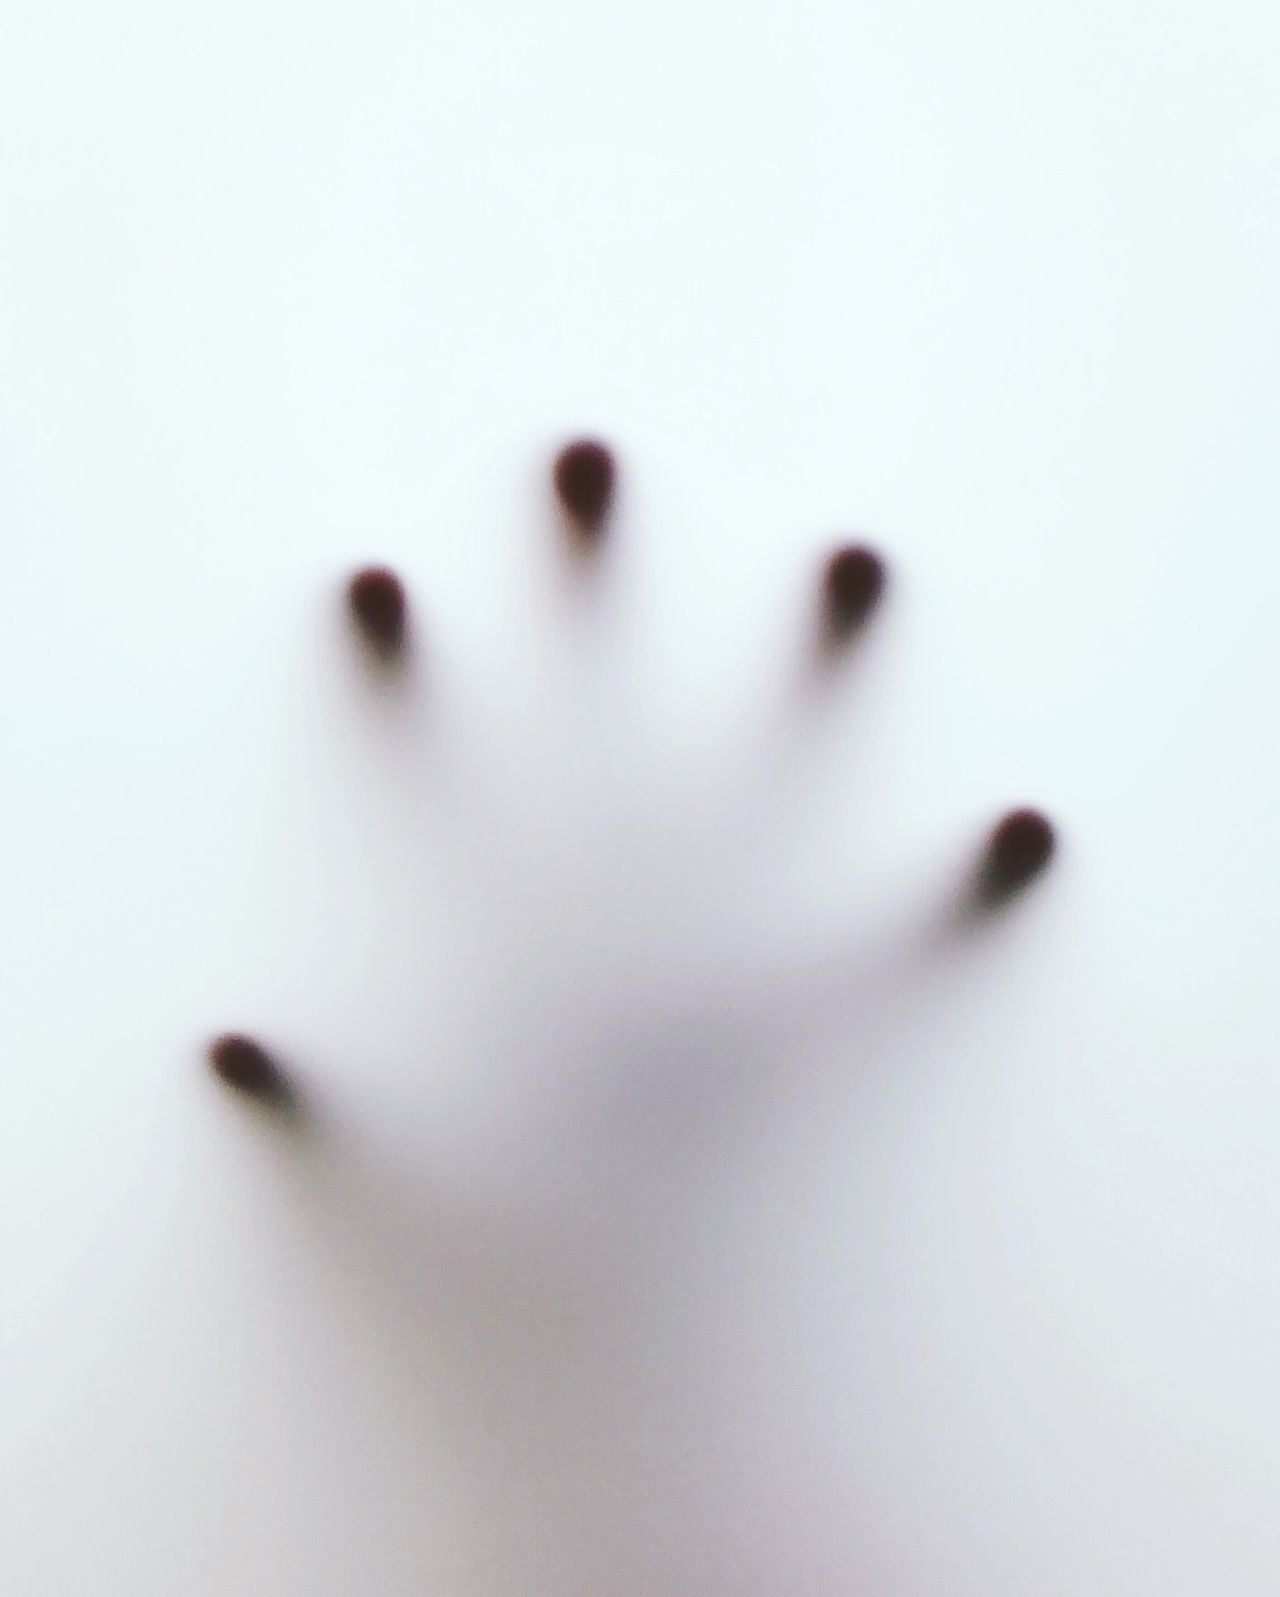 Close-up of human hand on condensed window